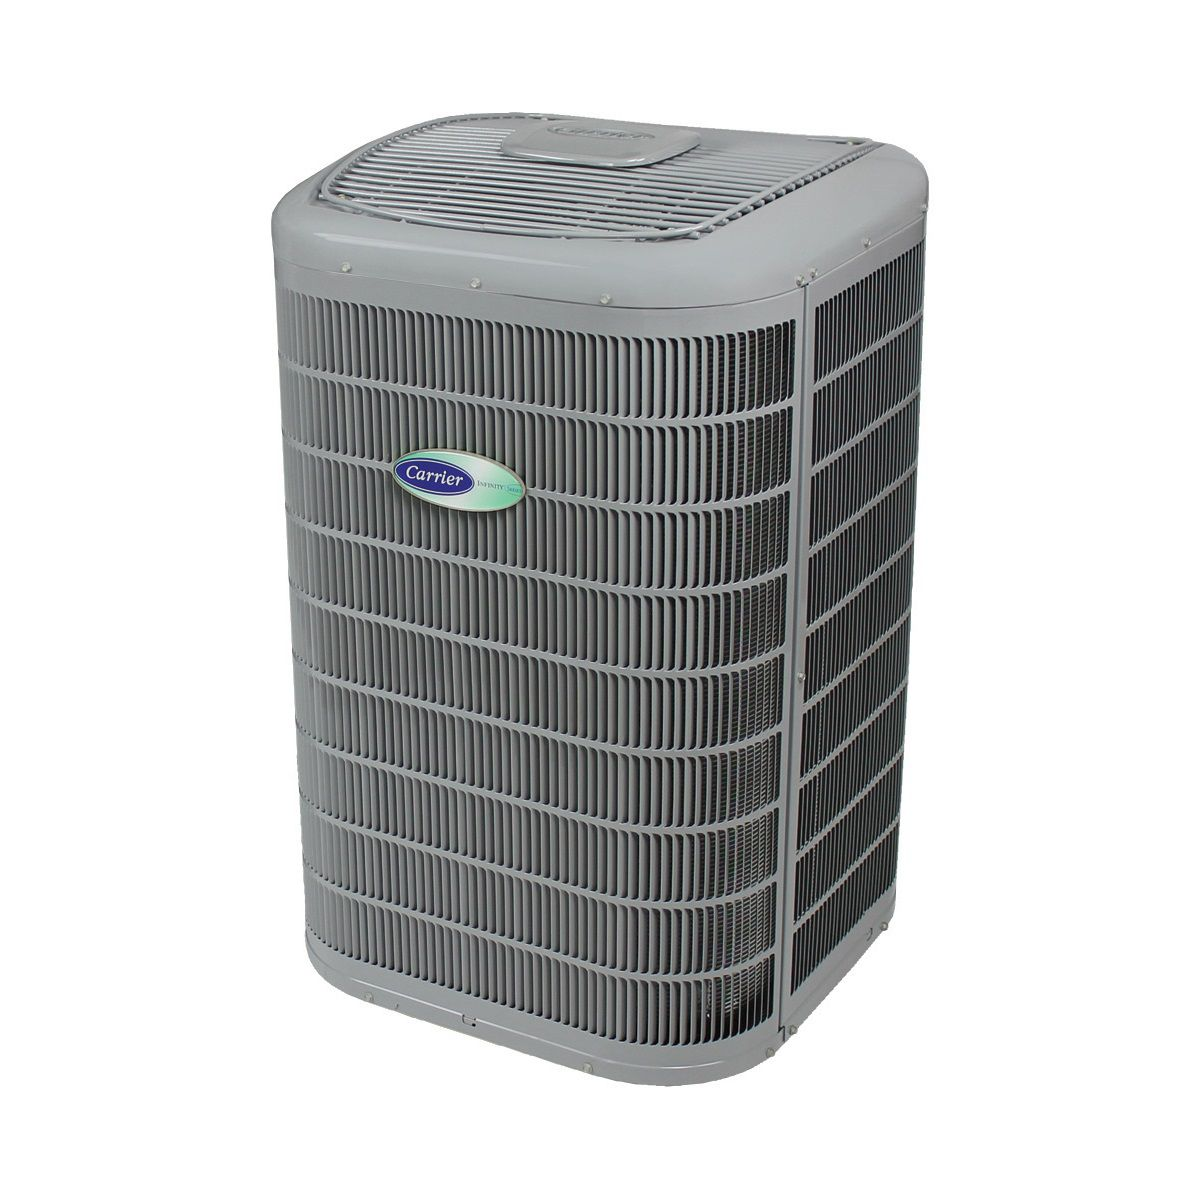 Carrier 24VNA960A003 Straight Cool - Residential Condensers